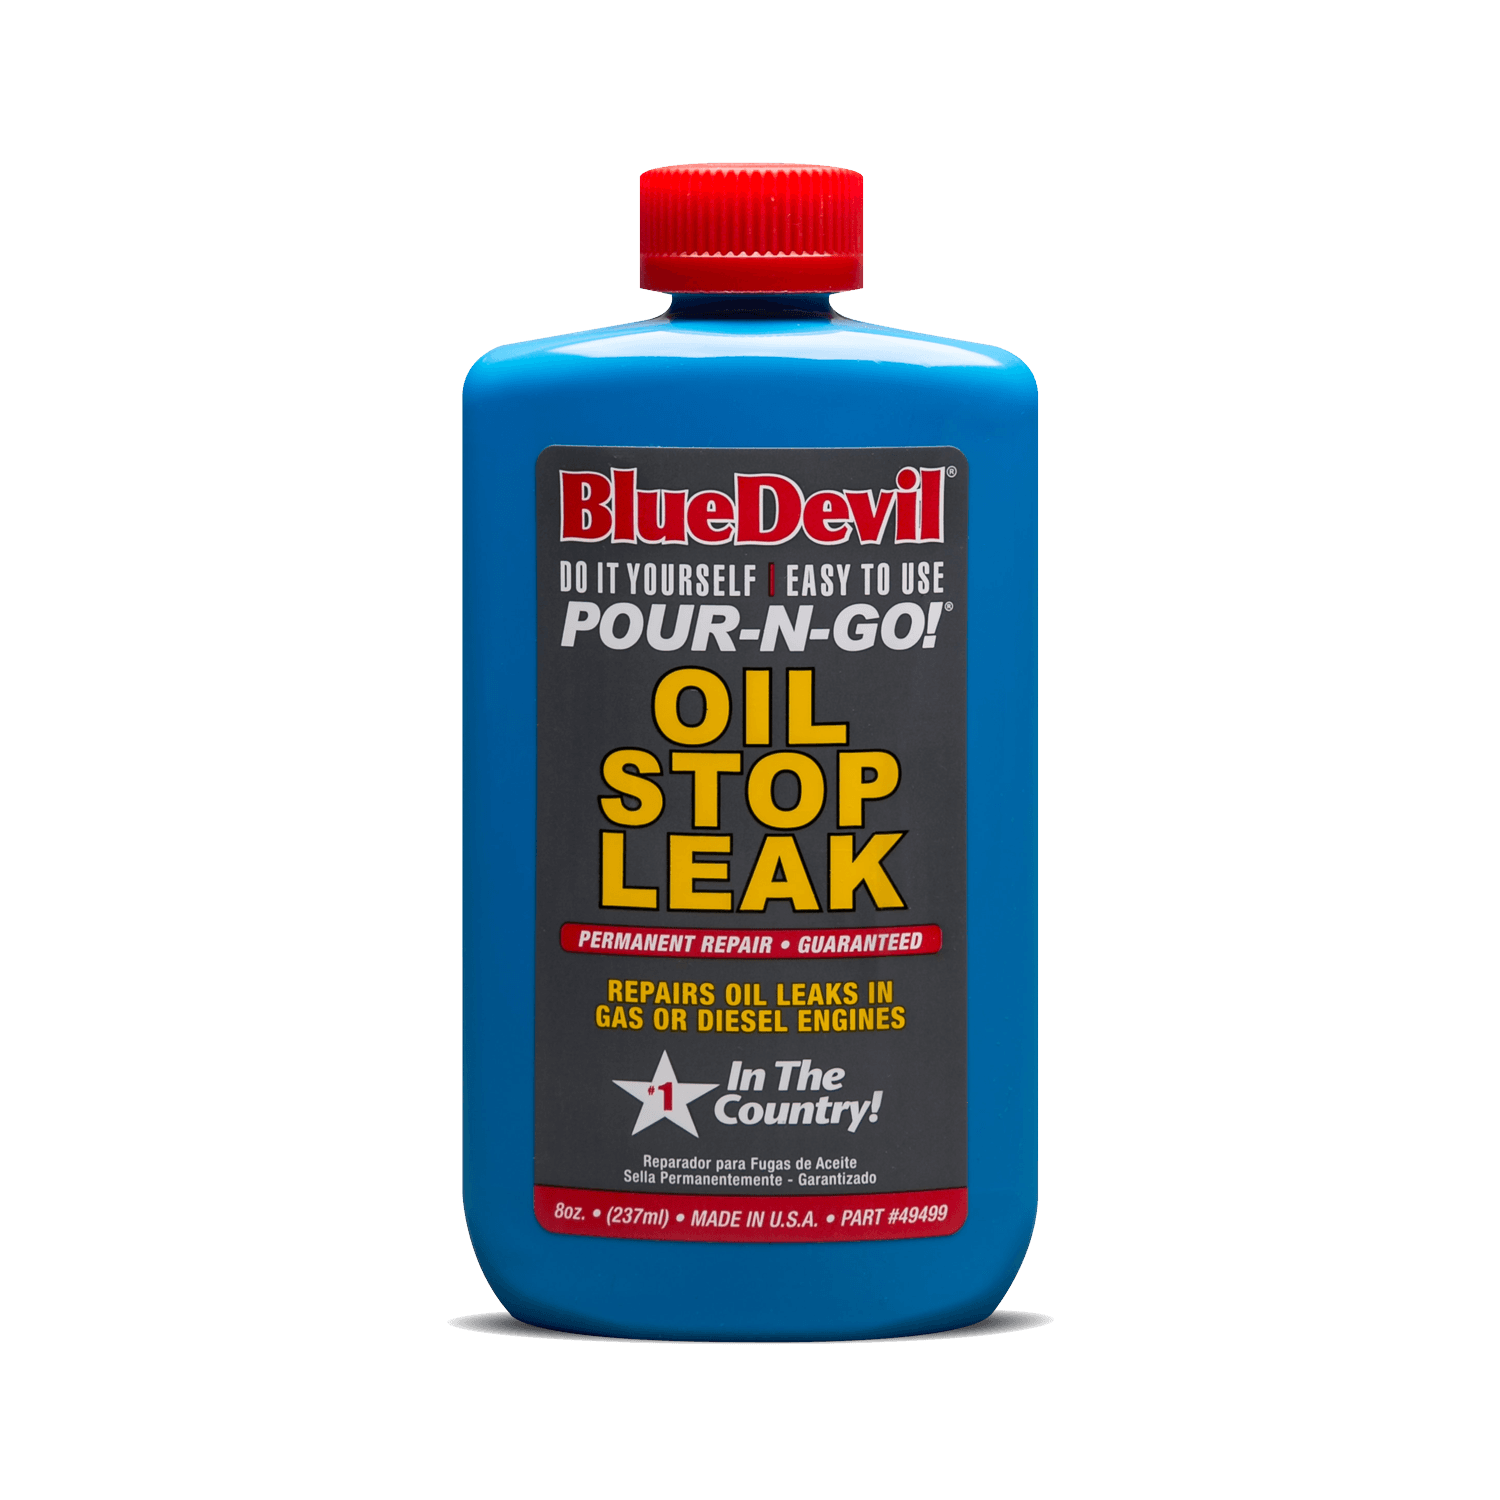 Oil Leak Repair >> Oil Stop Leak Engine Oil Leak Sealant Bluedevil